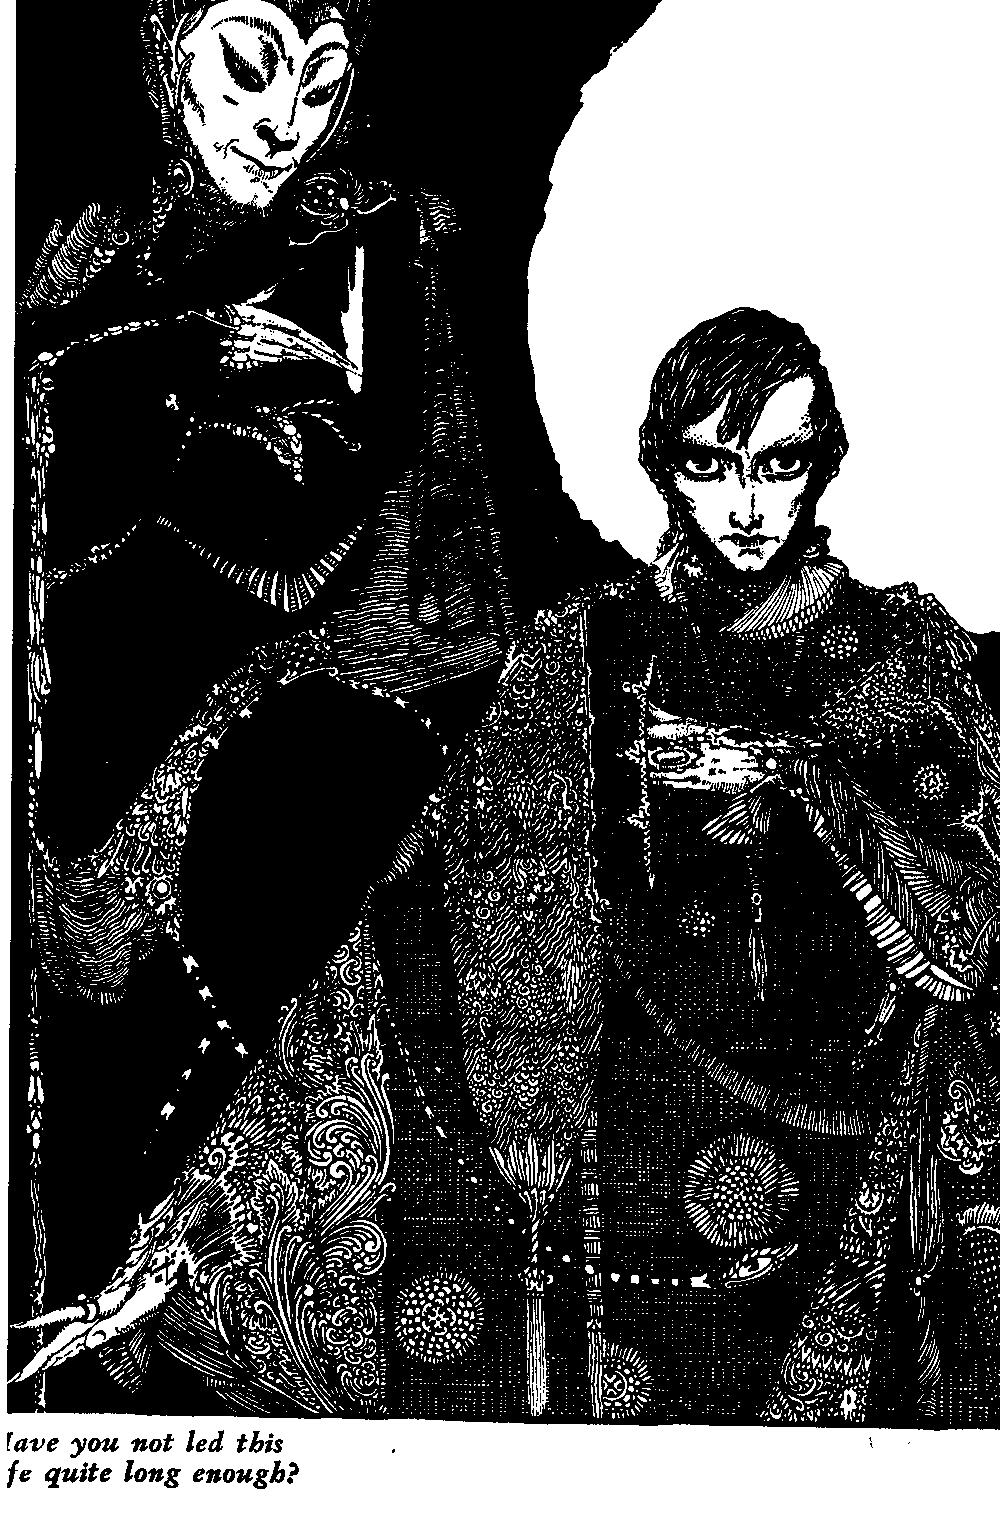 Illustration by  Harry Clarke  for Goethe's   Faust